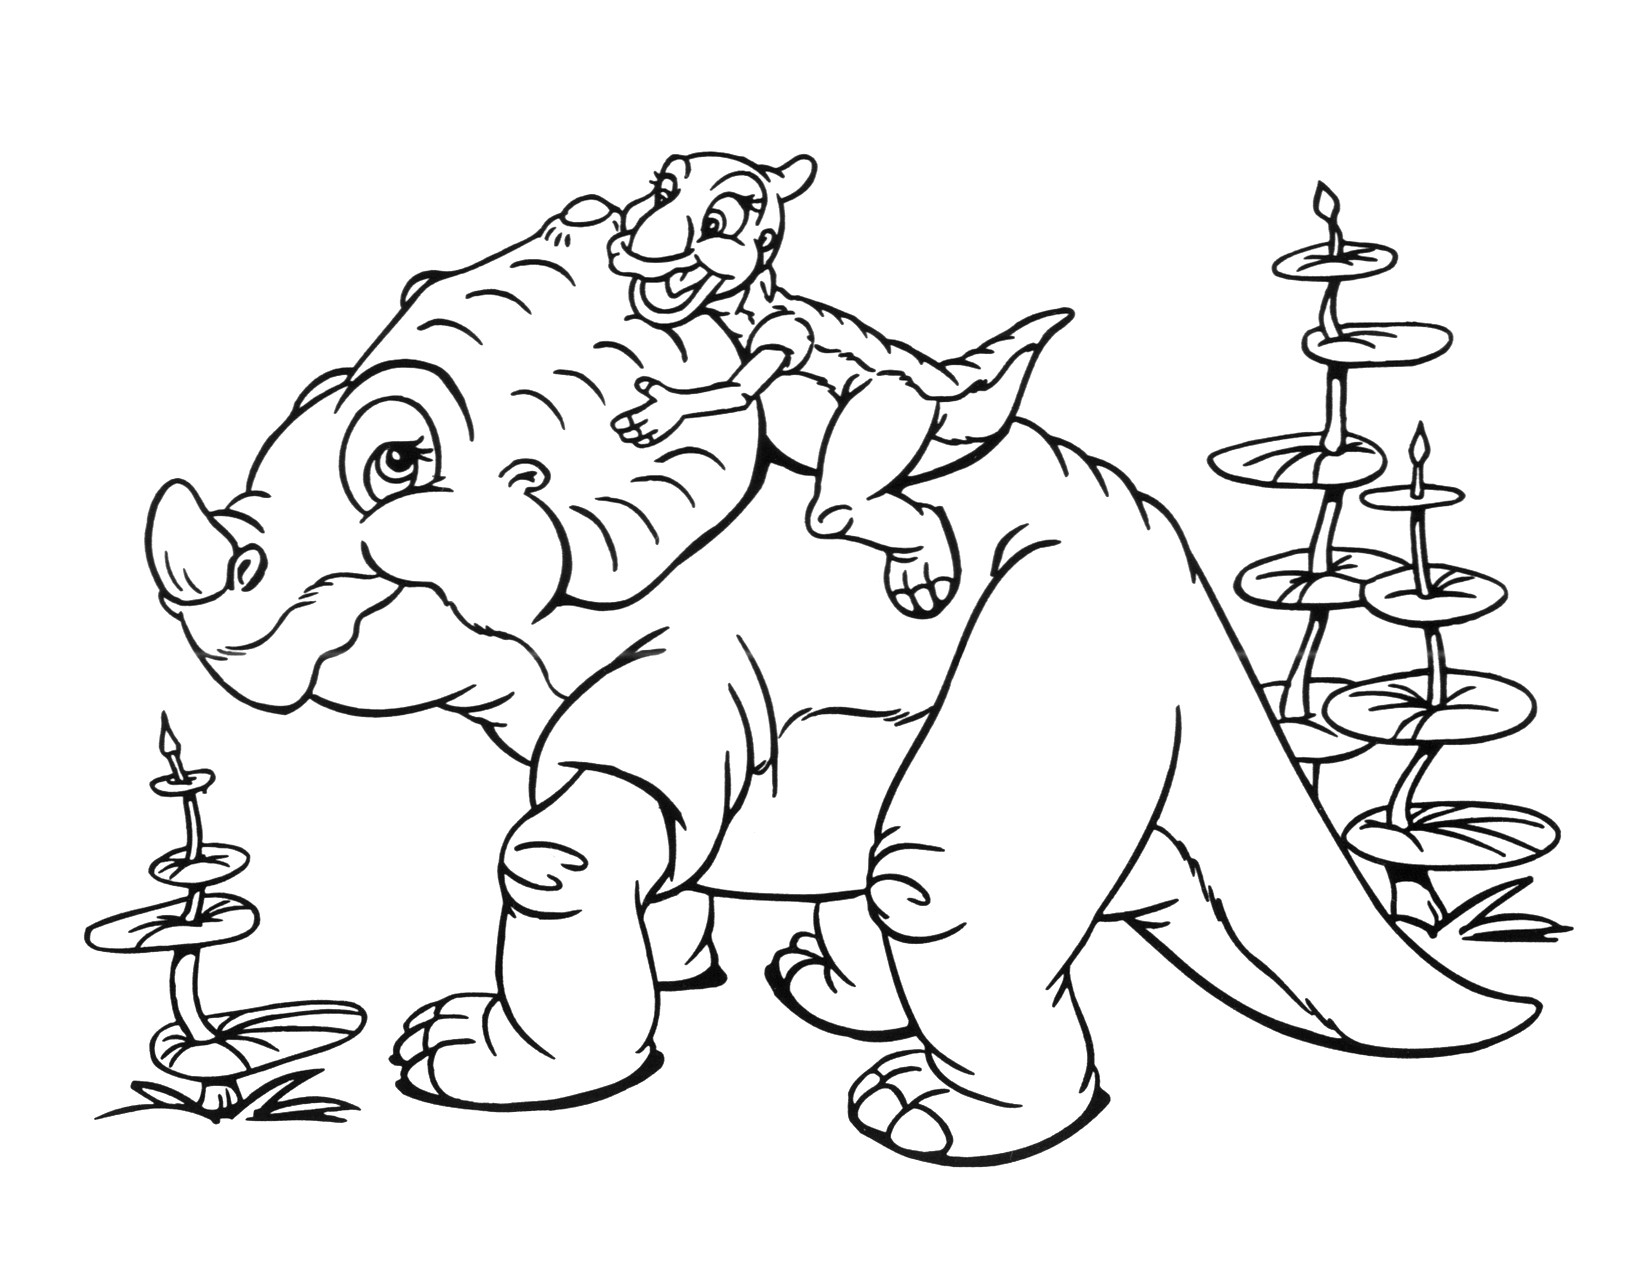 Chucky Coloring Pages Chucky Coloring Pages Fun Time